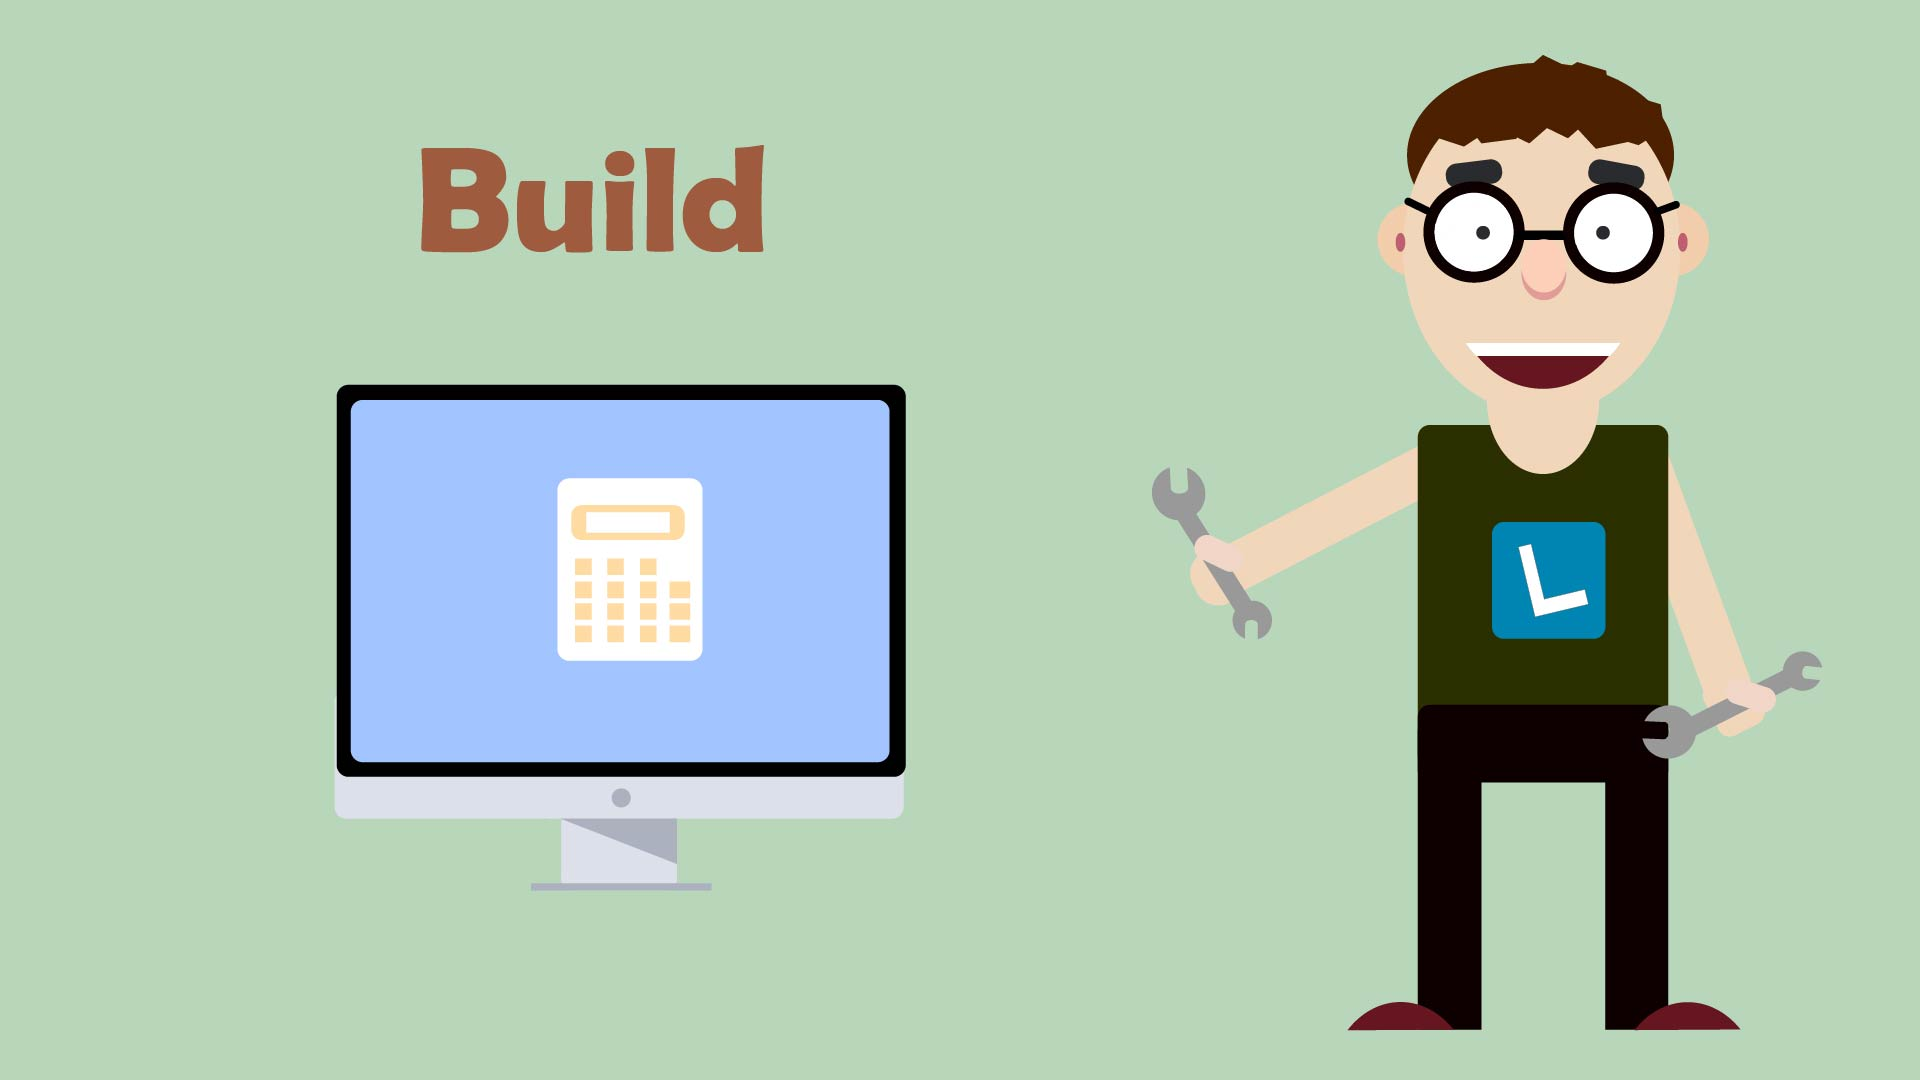 1. Learn How To Build Your First Calculator